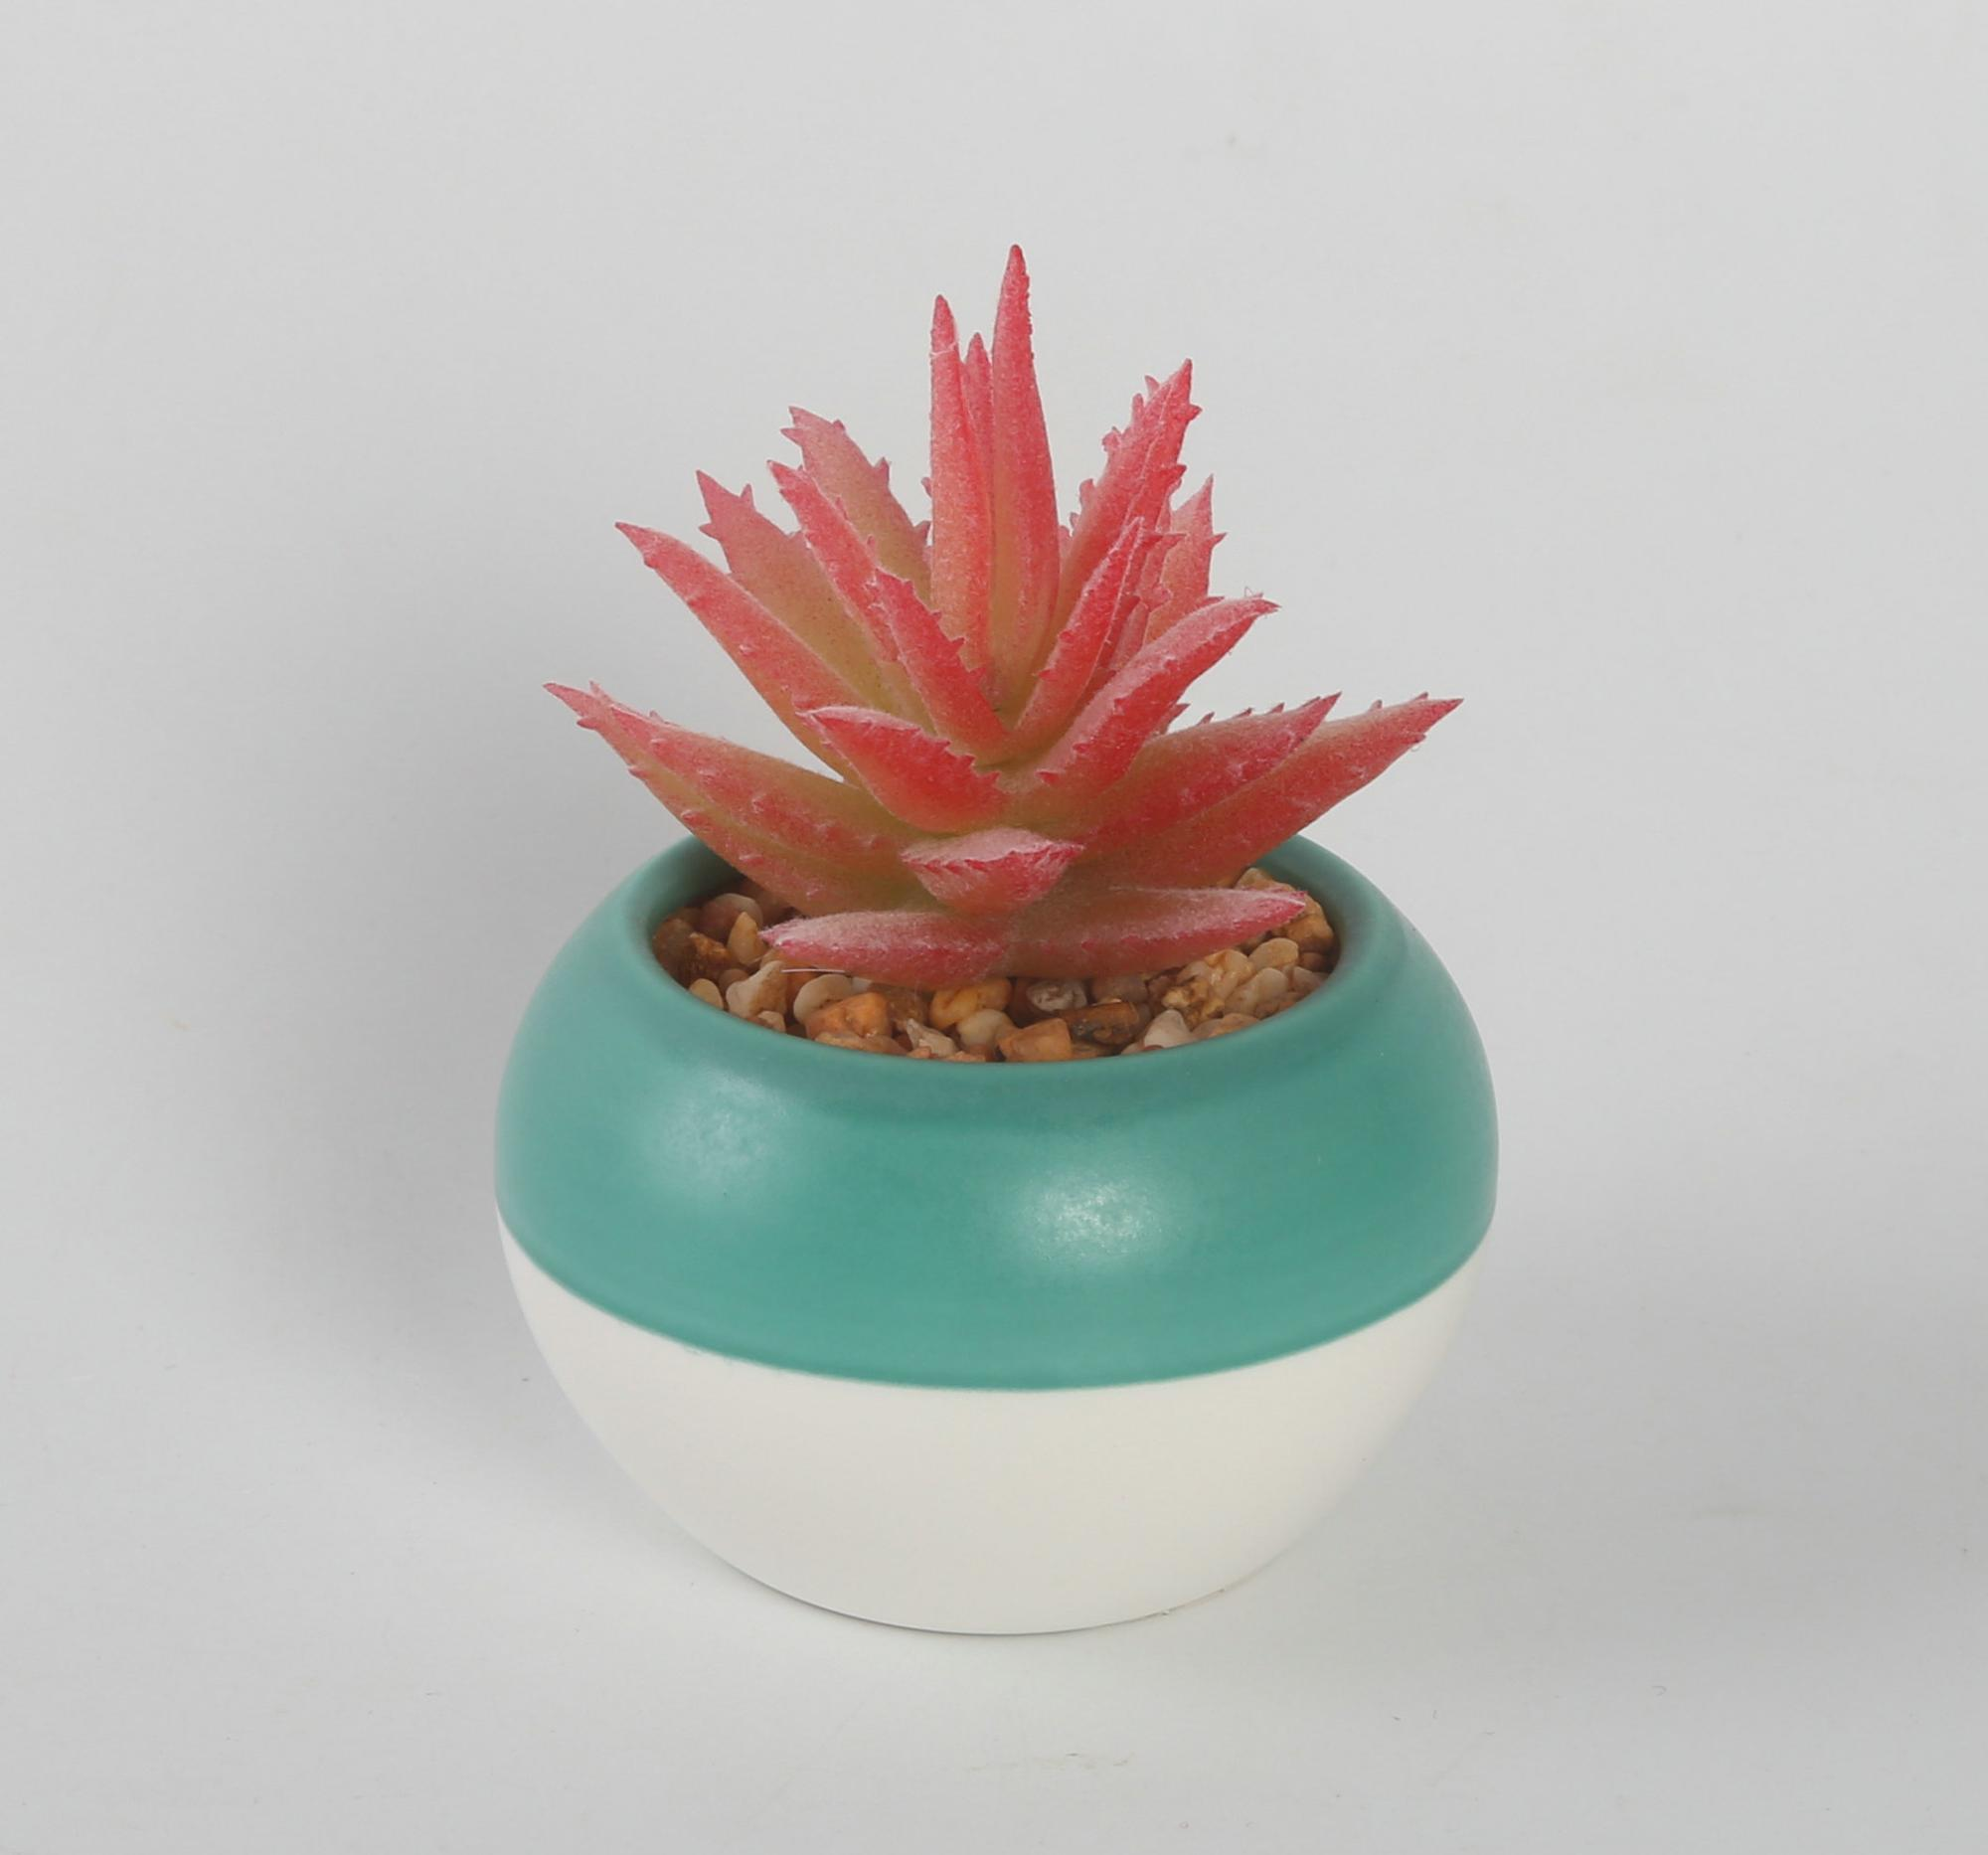 Hot selling cheap bulk novelty artificial plant bonsai pot with ceramic flower pot